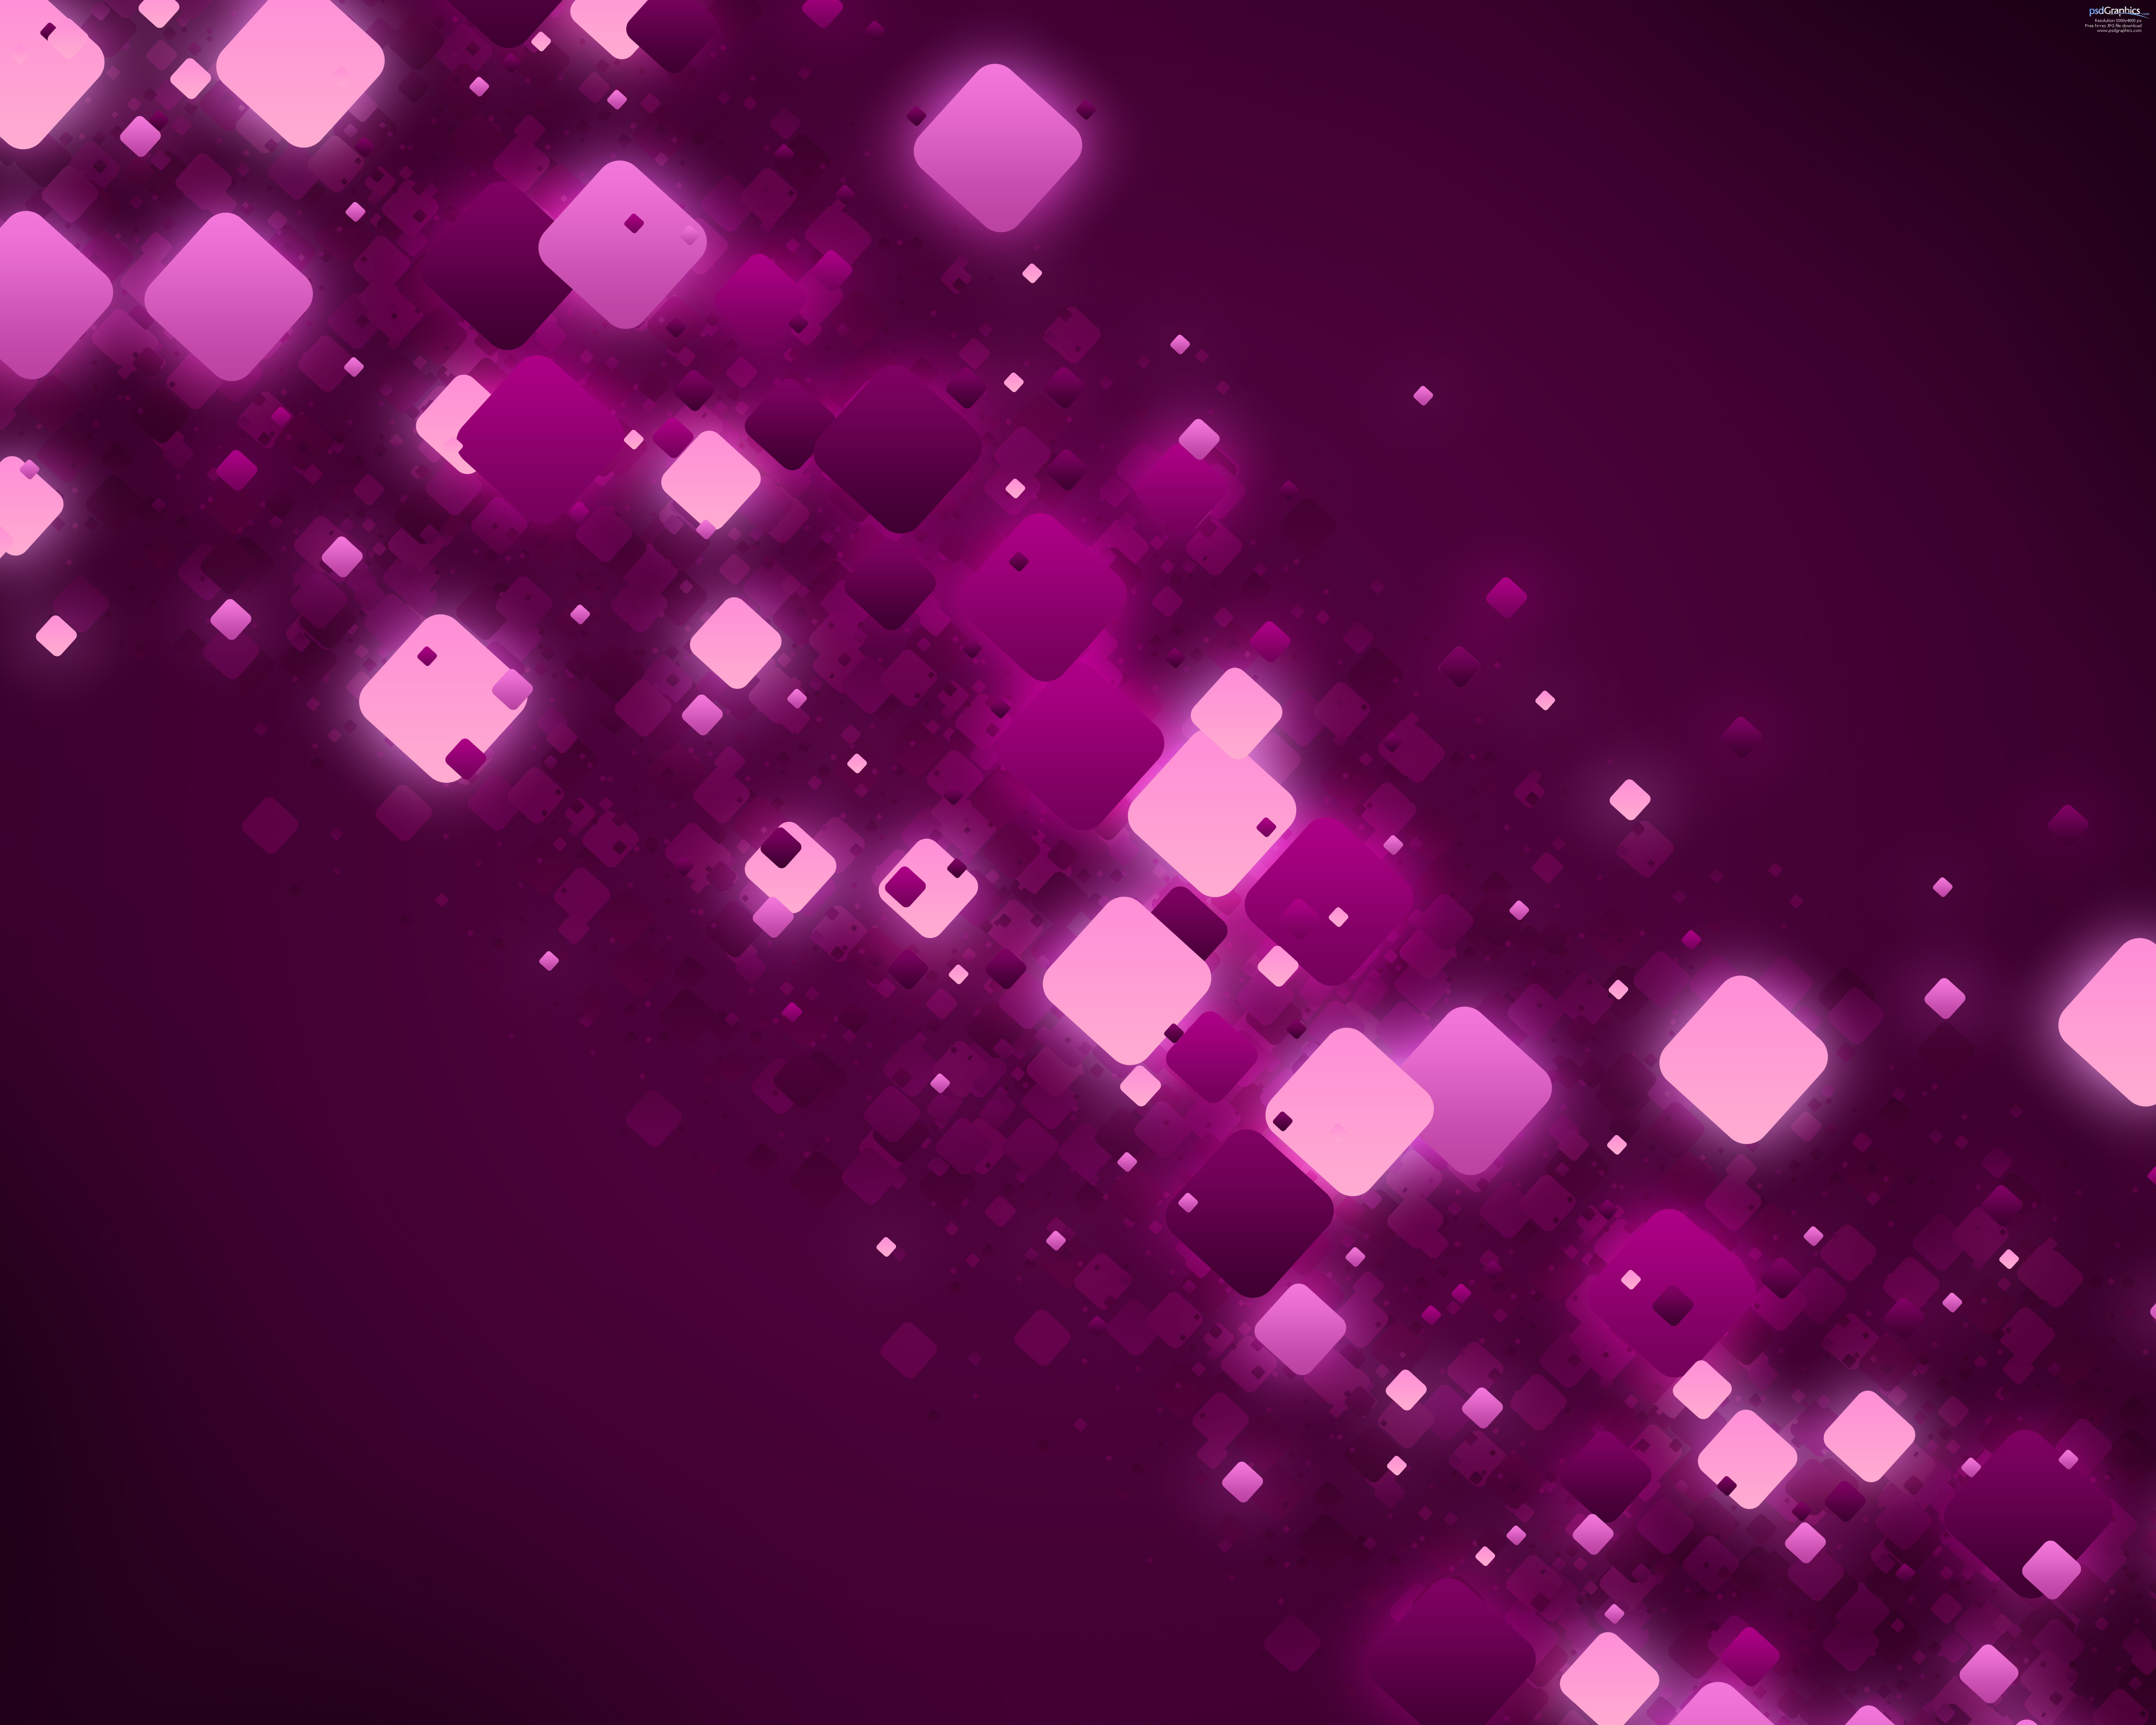 10 Abstract Graphics Light Purple Images